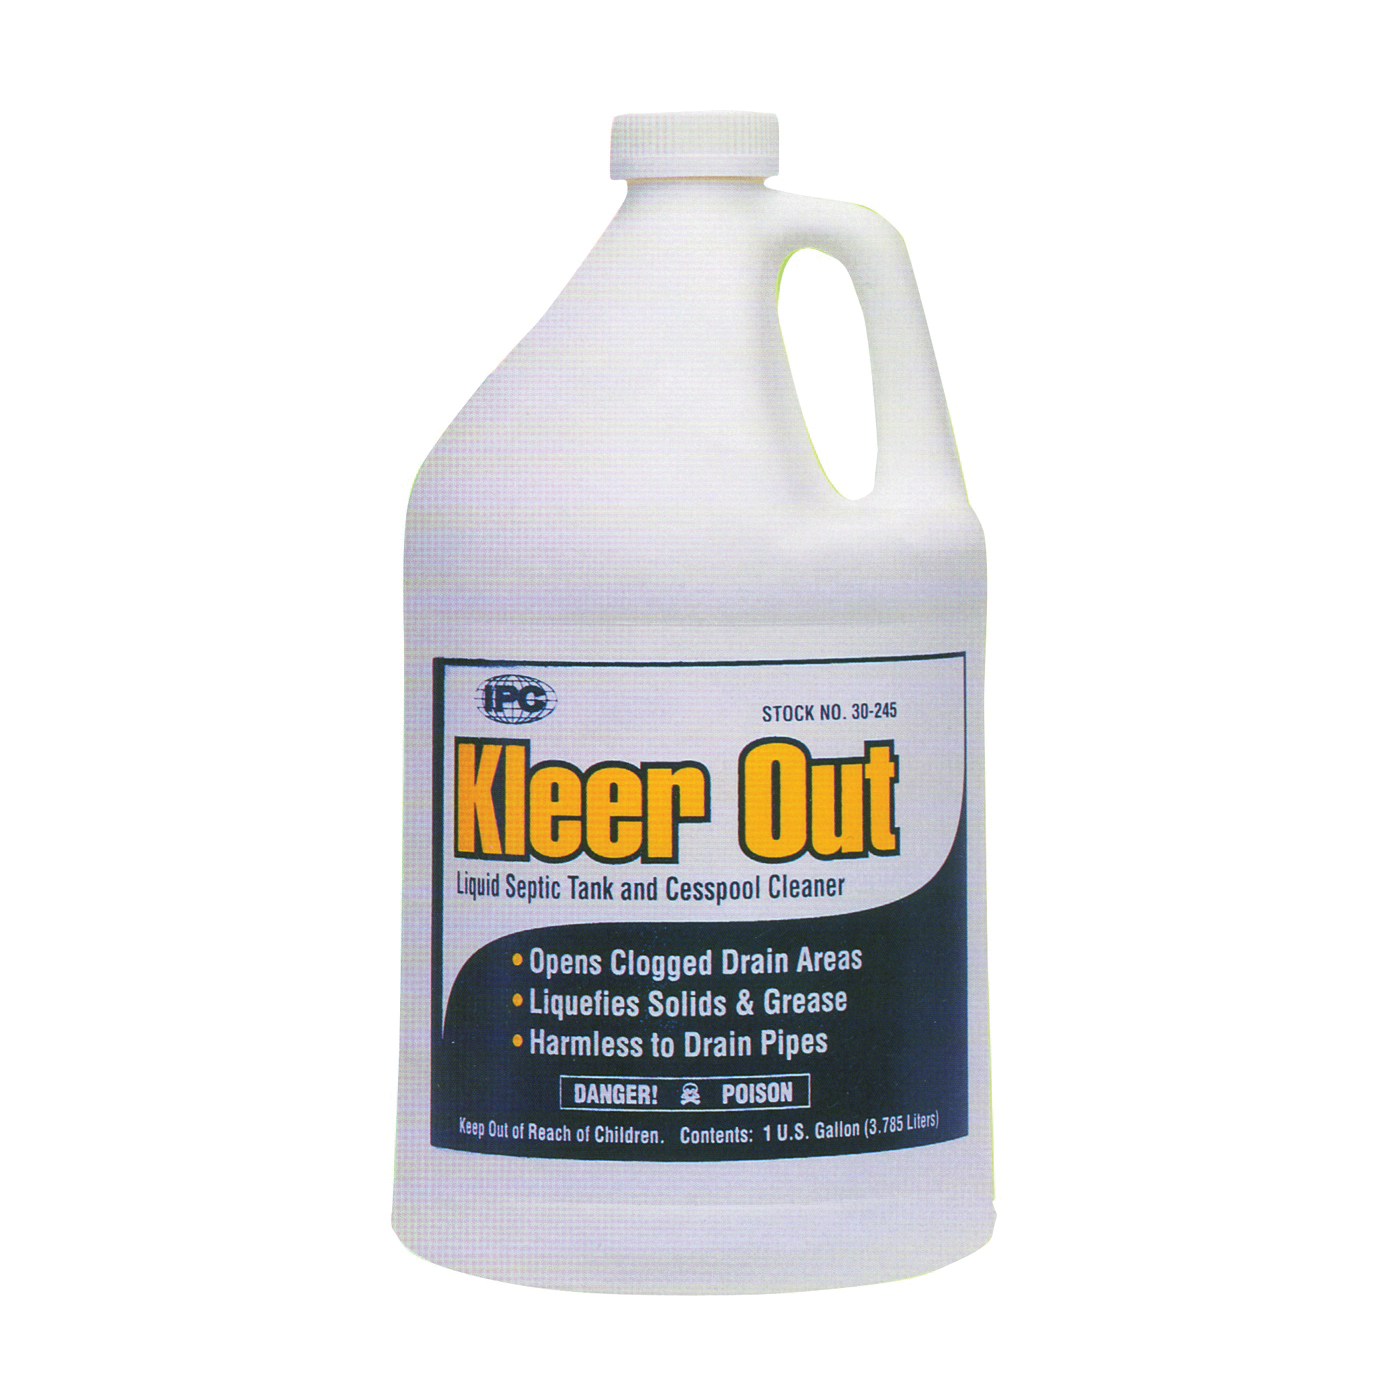 Picture of ComStar Kleer Out 30-245 Septic Tank Cleaner, Liquid, Clear, Odorless, 1 gal Package, Bottle